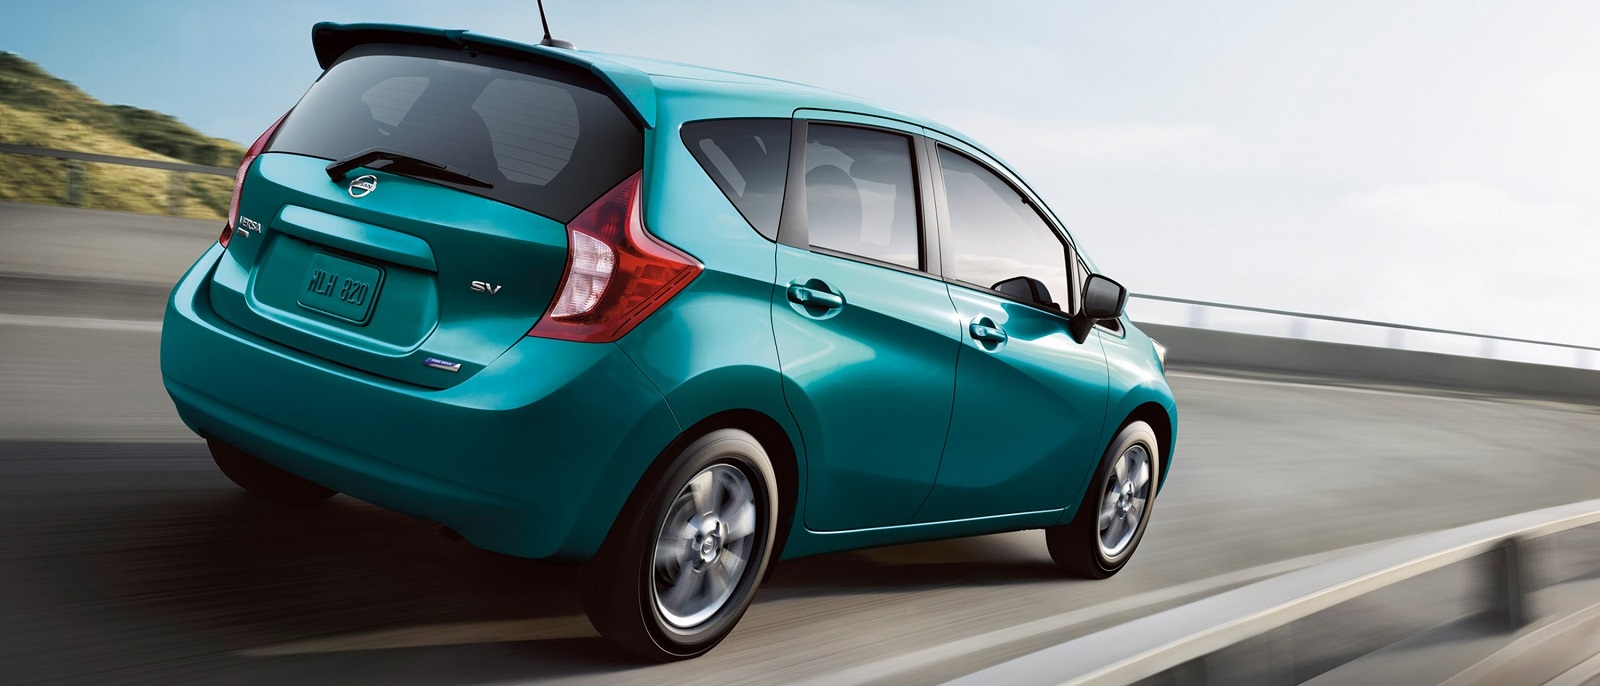 2016-nissan-versa-note-rear-profile-teal